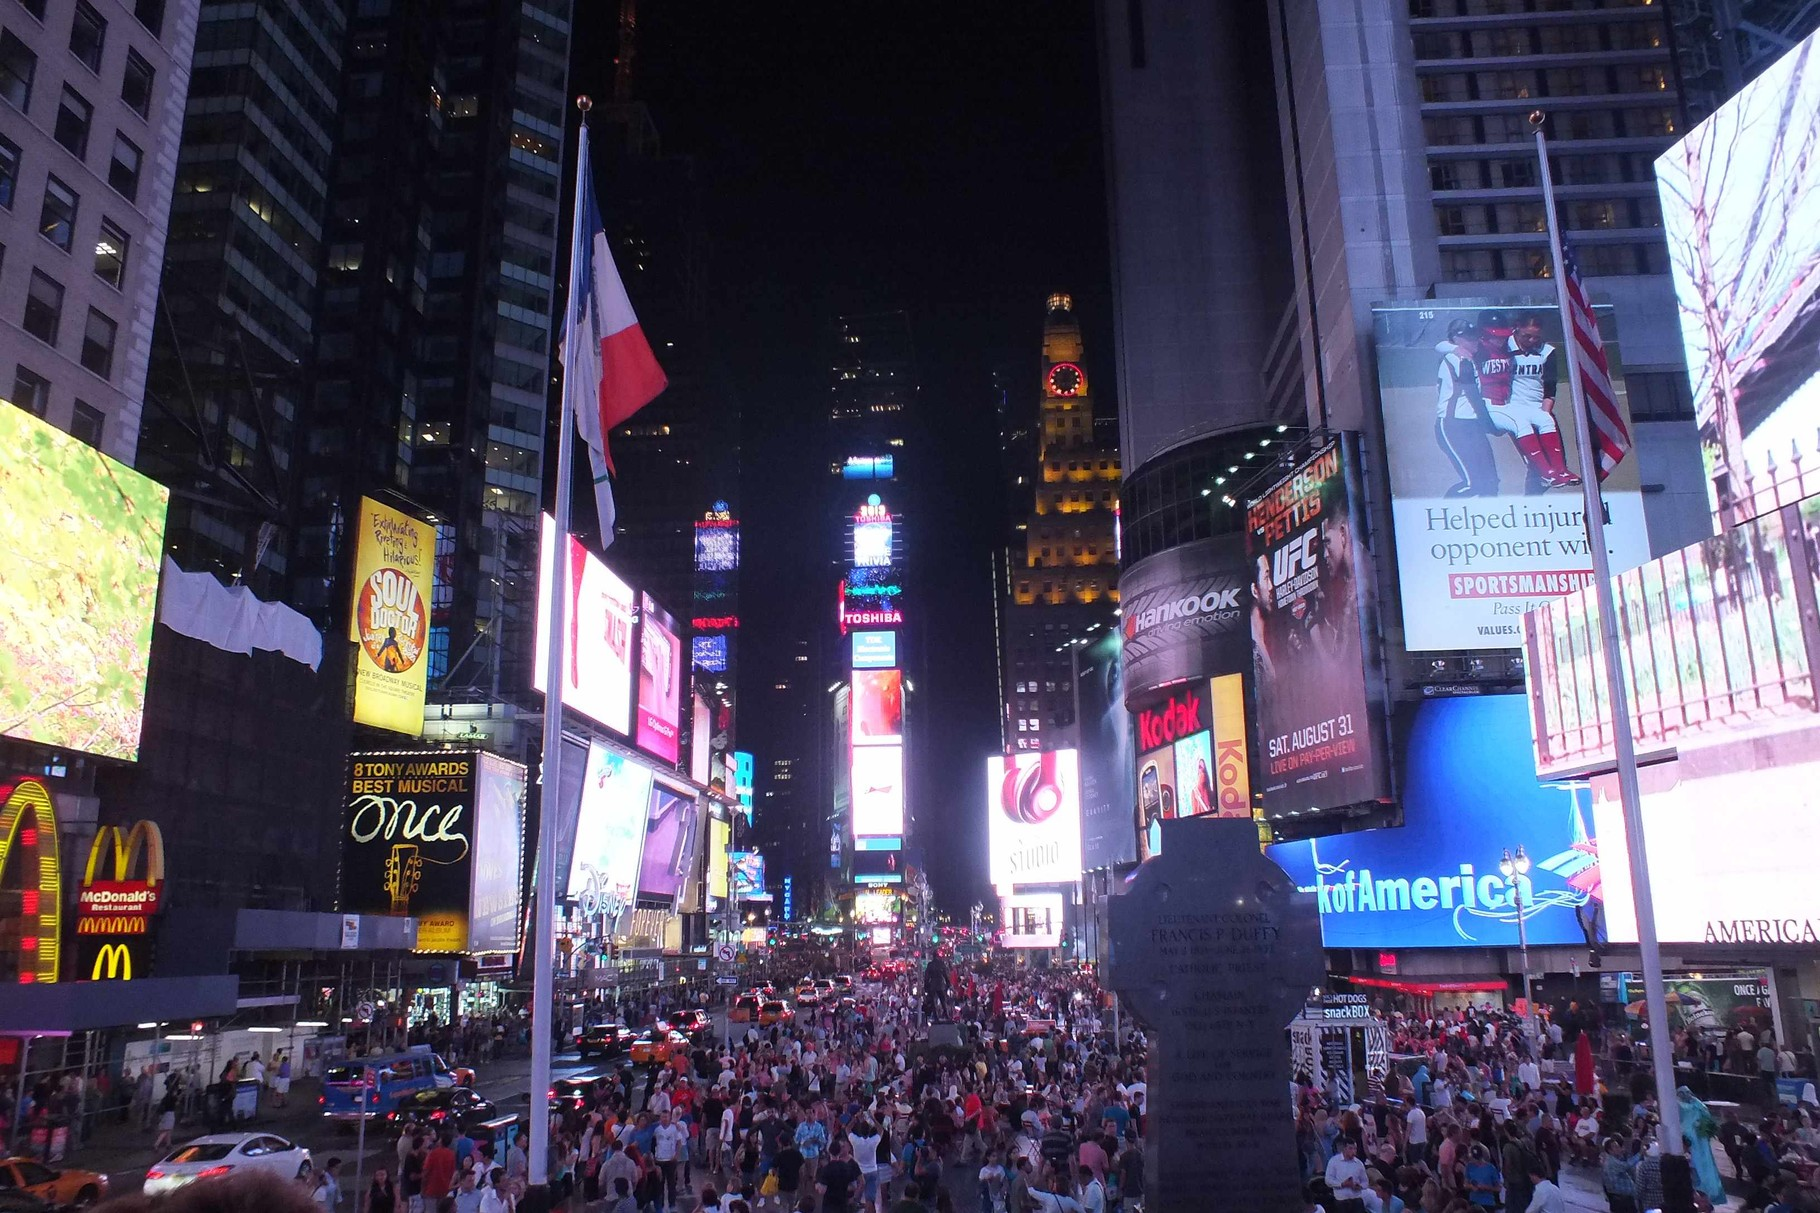 Times Square bei Nacht - the city that never sleeps - stimmt hier